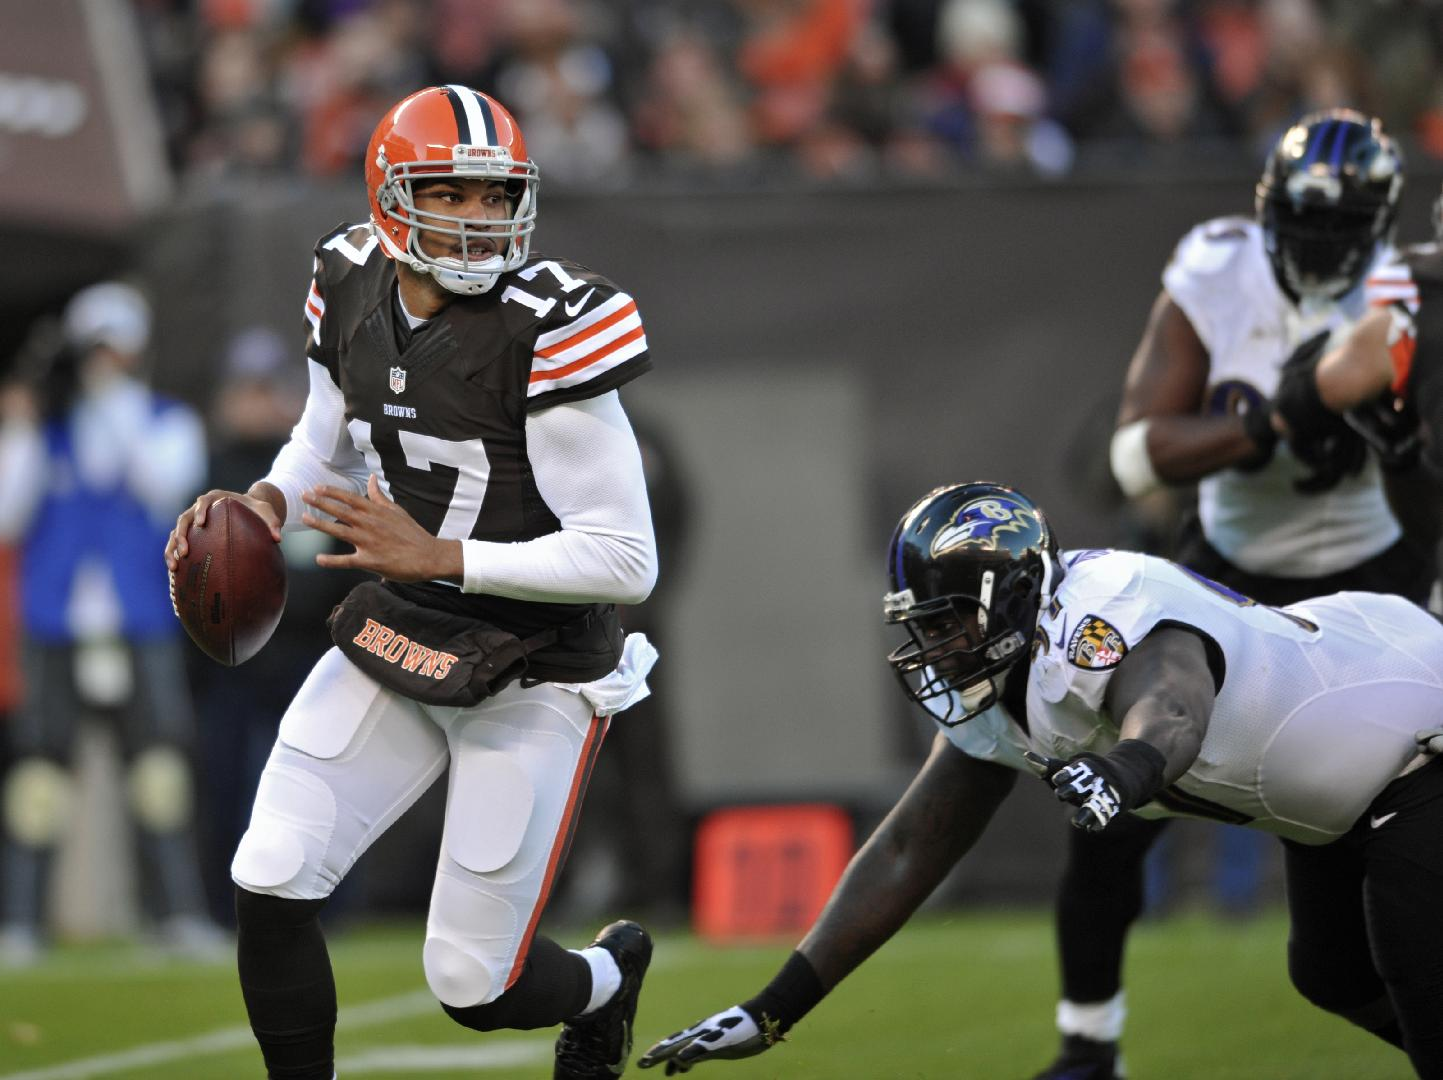 FILE-In this Sunday, Nov. 3, 2013 file photo shows Cleveland Browns quarterback Jason Campbell (17) scrambling before being sacked by the Baltimore Ravens in the first quarter of an NFL football game. Campbell was hoping to resurrect his career when he signed with the Browns